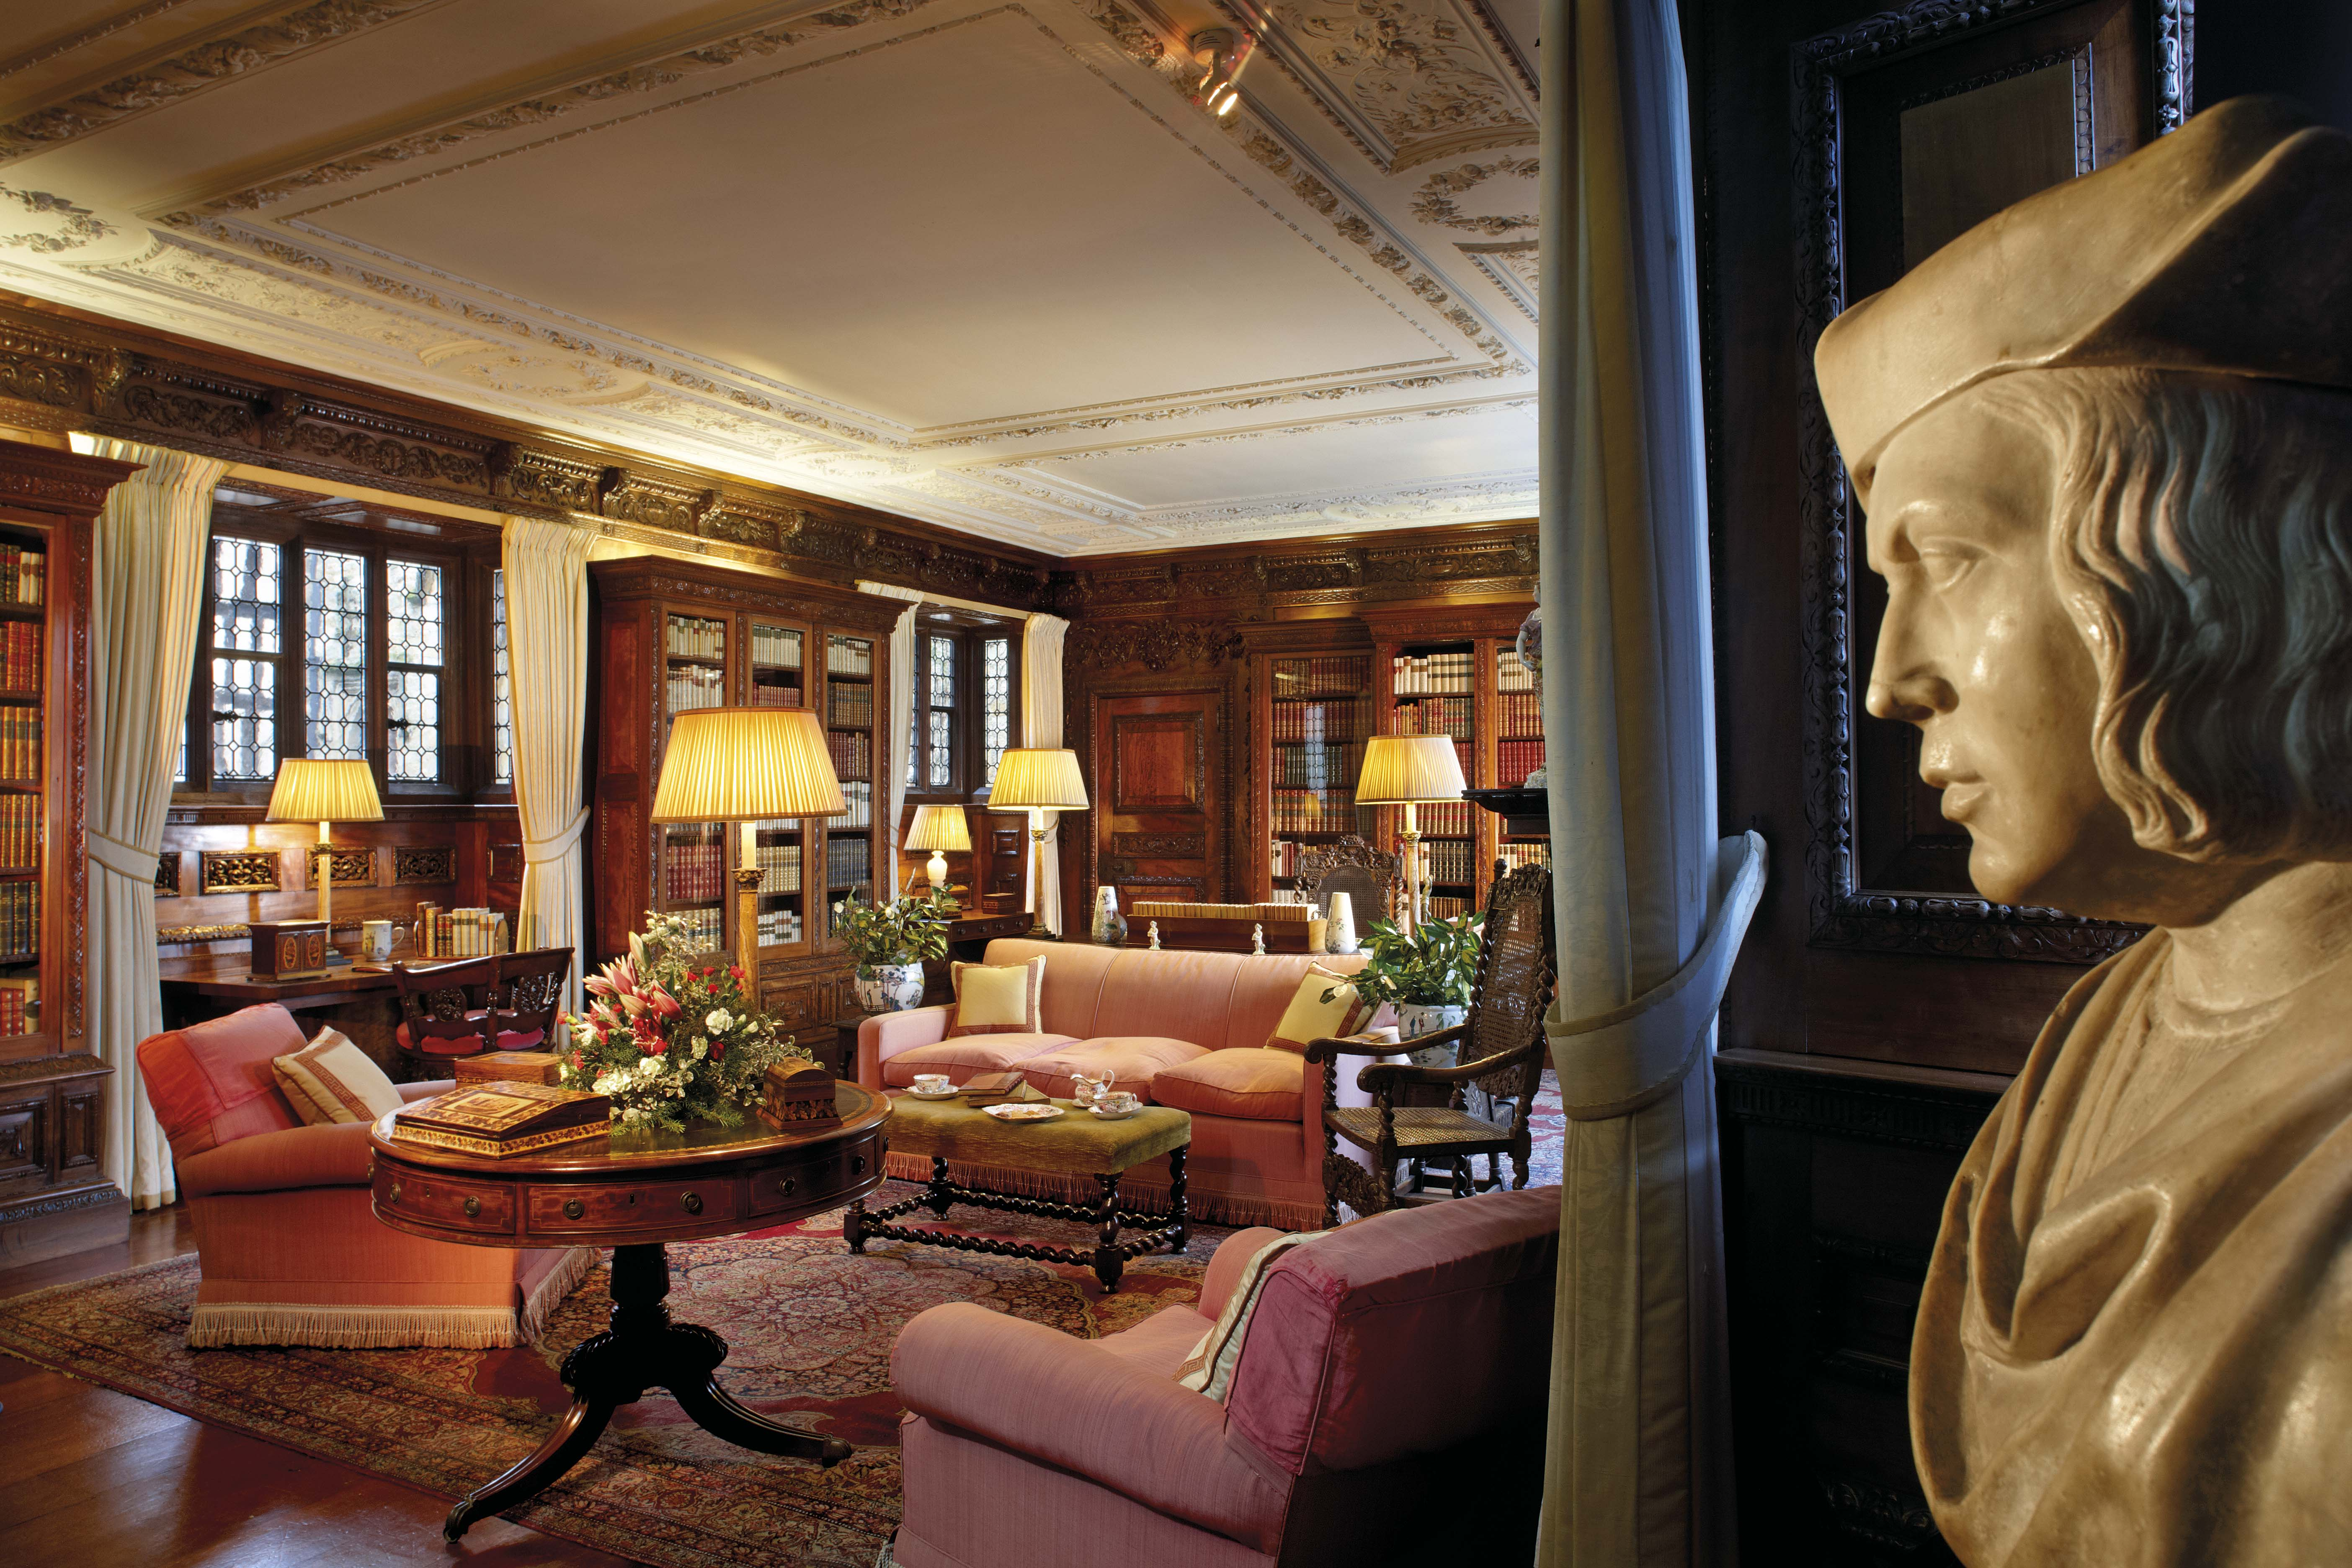 The library at Hever Castle